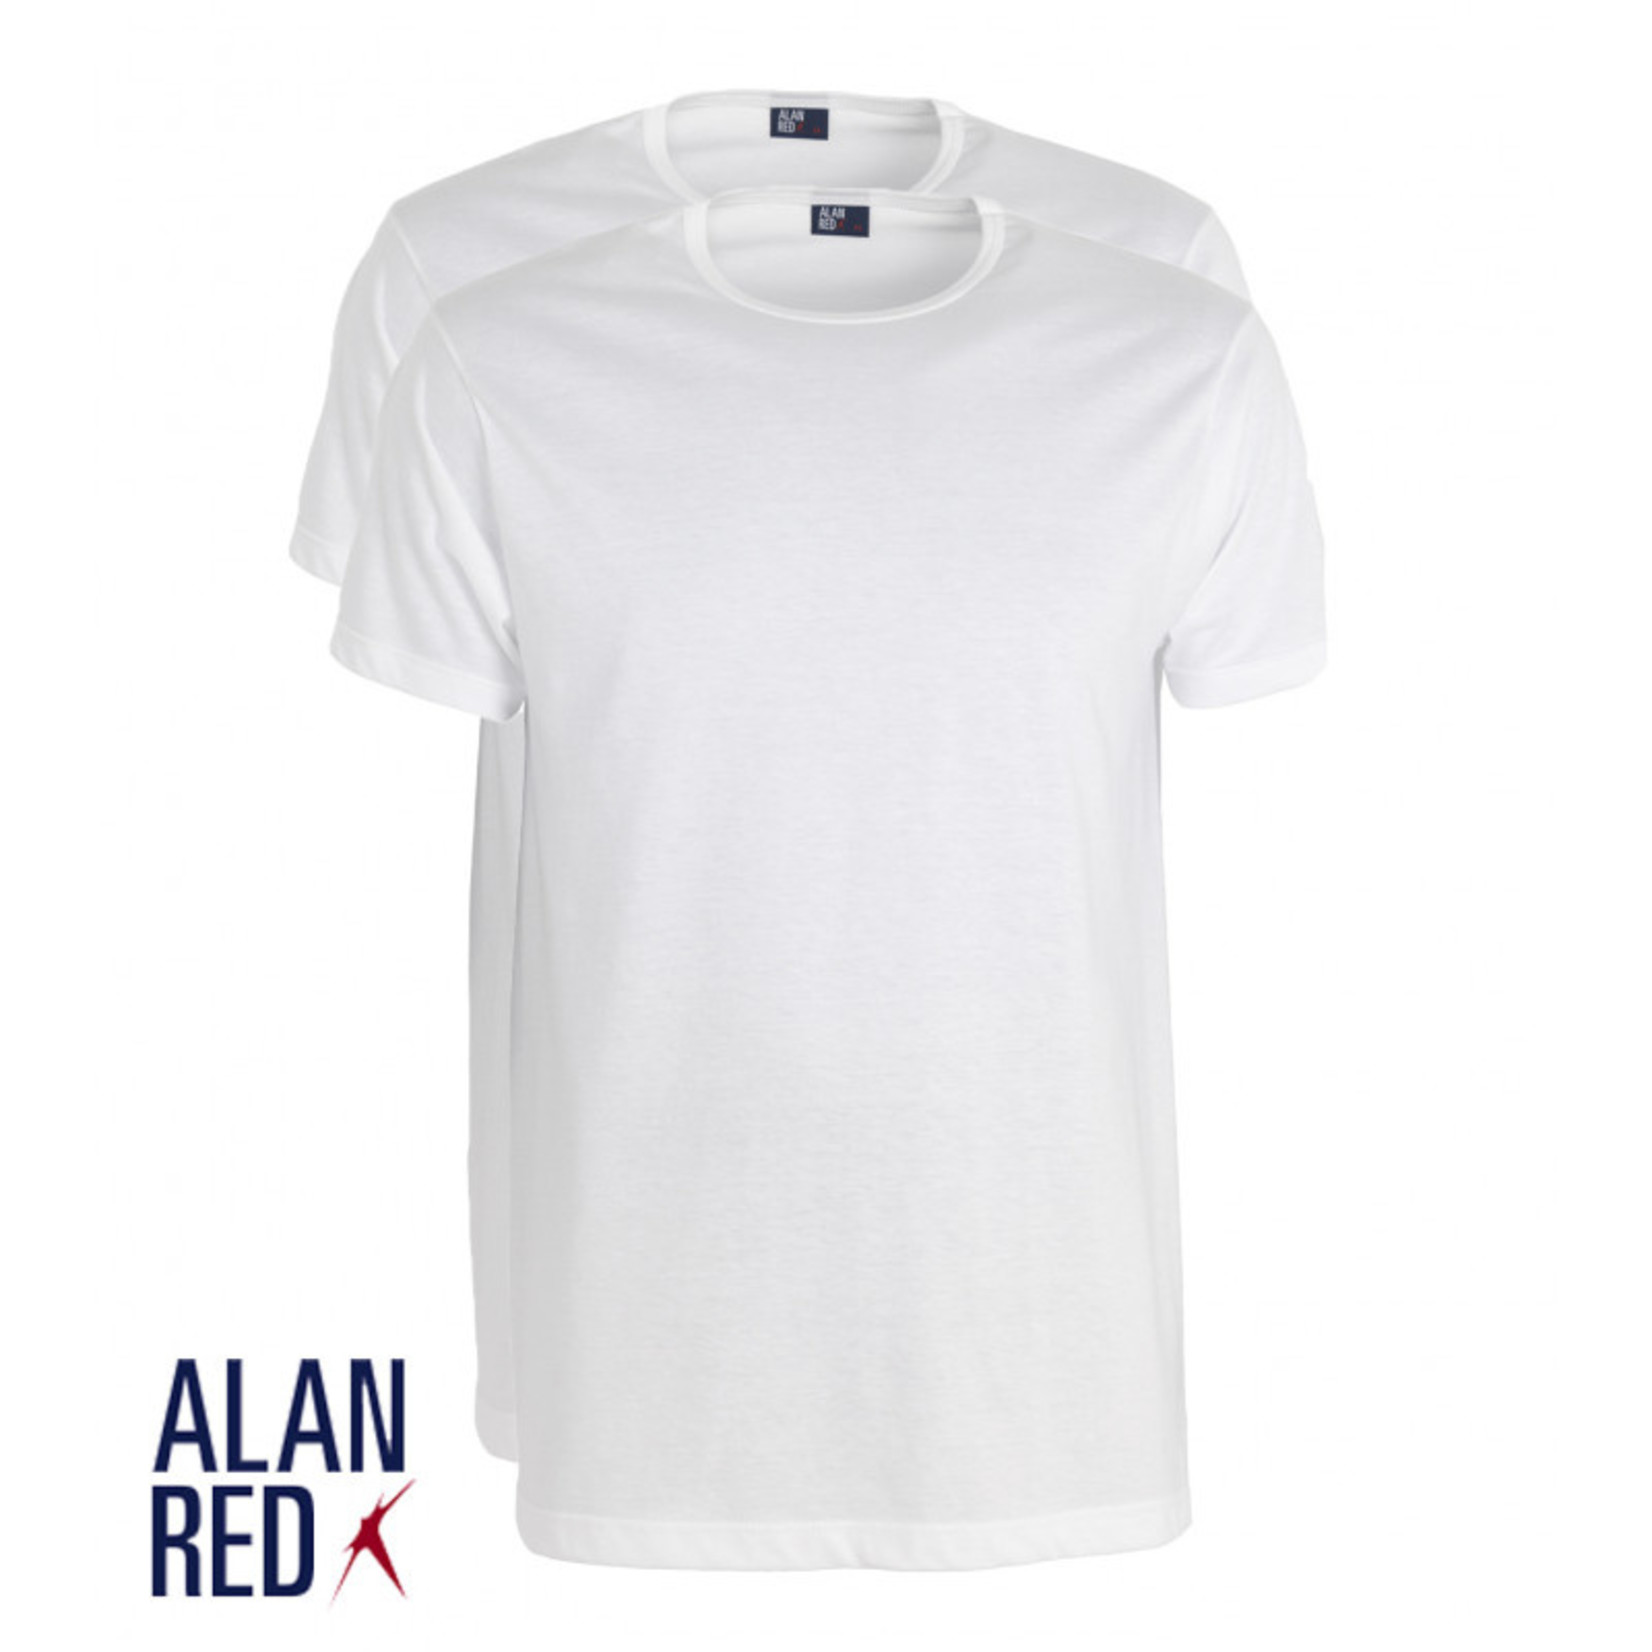 Alan Red Derby 2-pack smalle ronde hals t-shirt wit